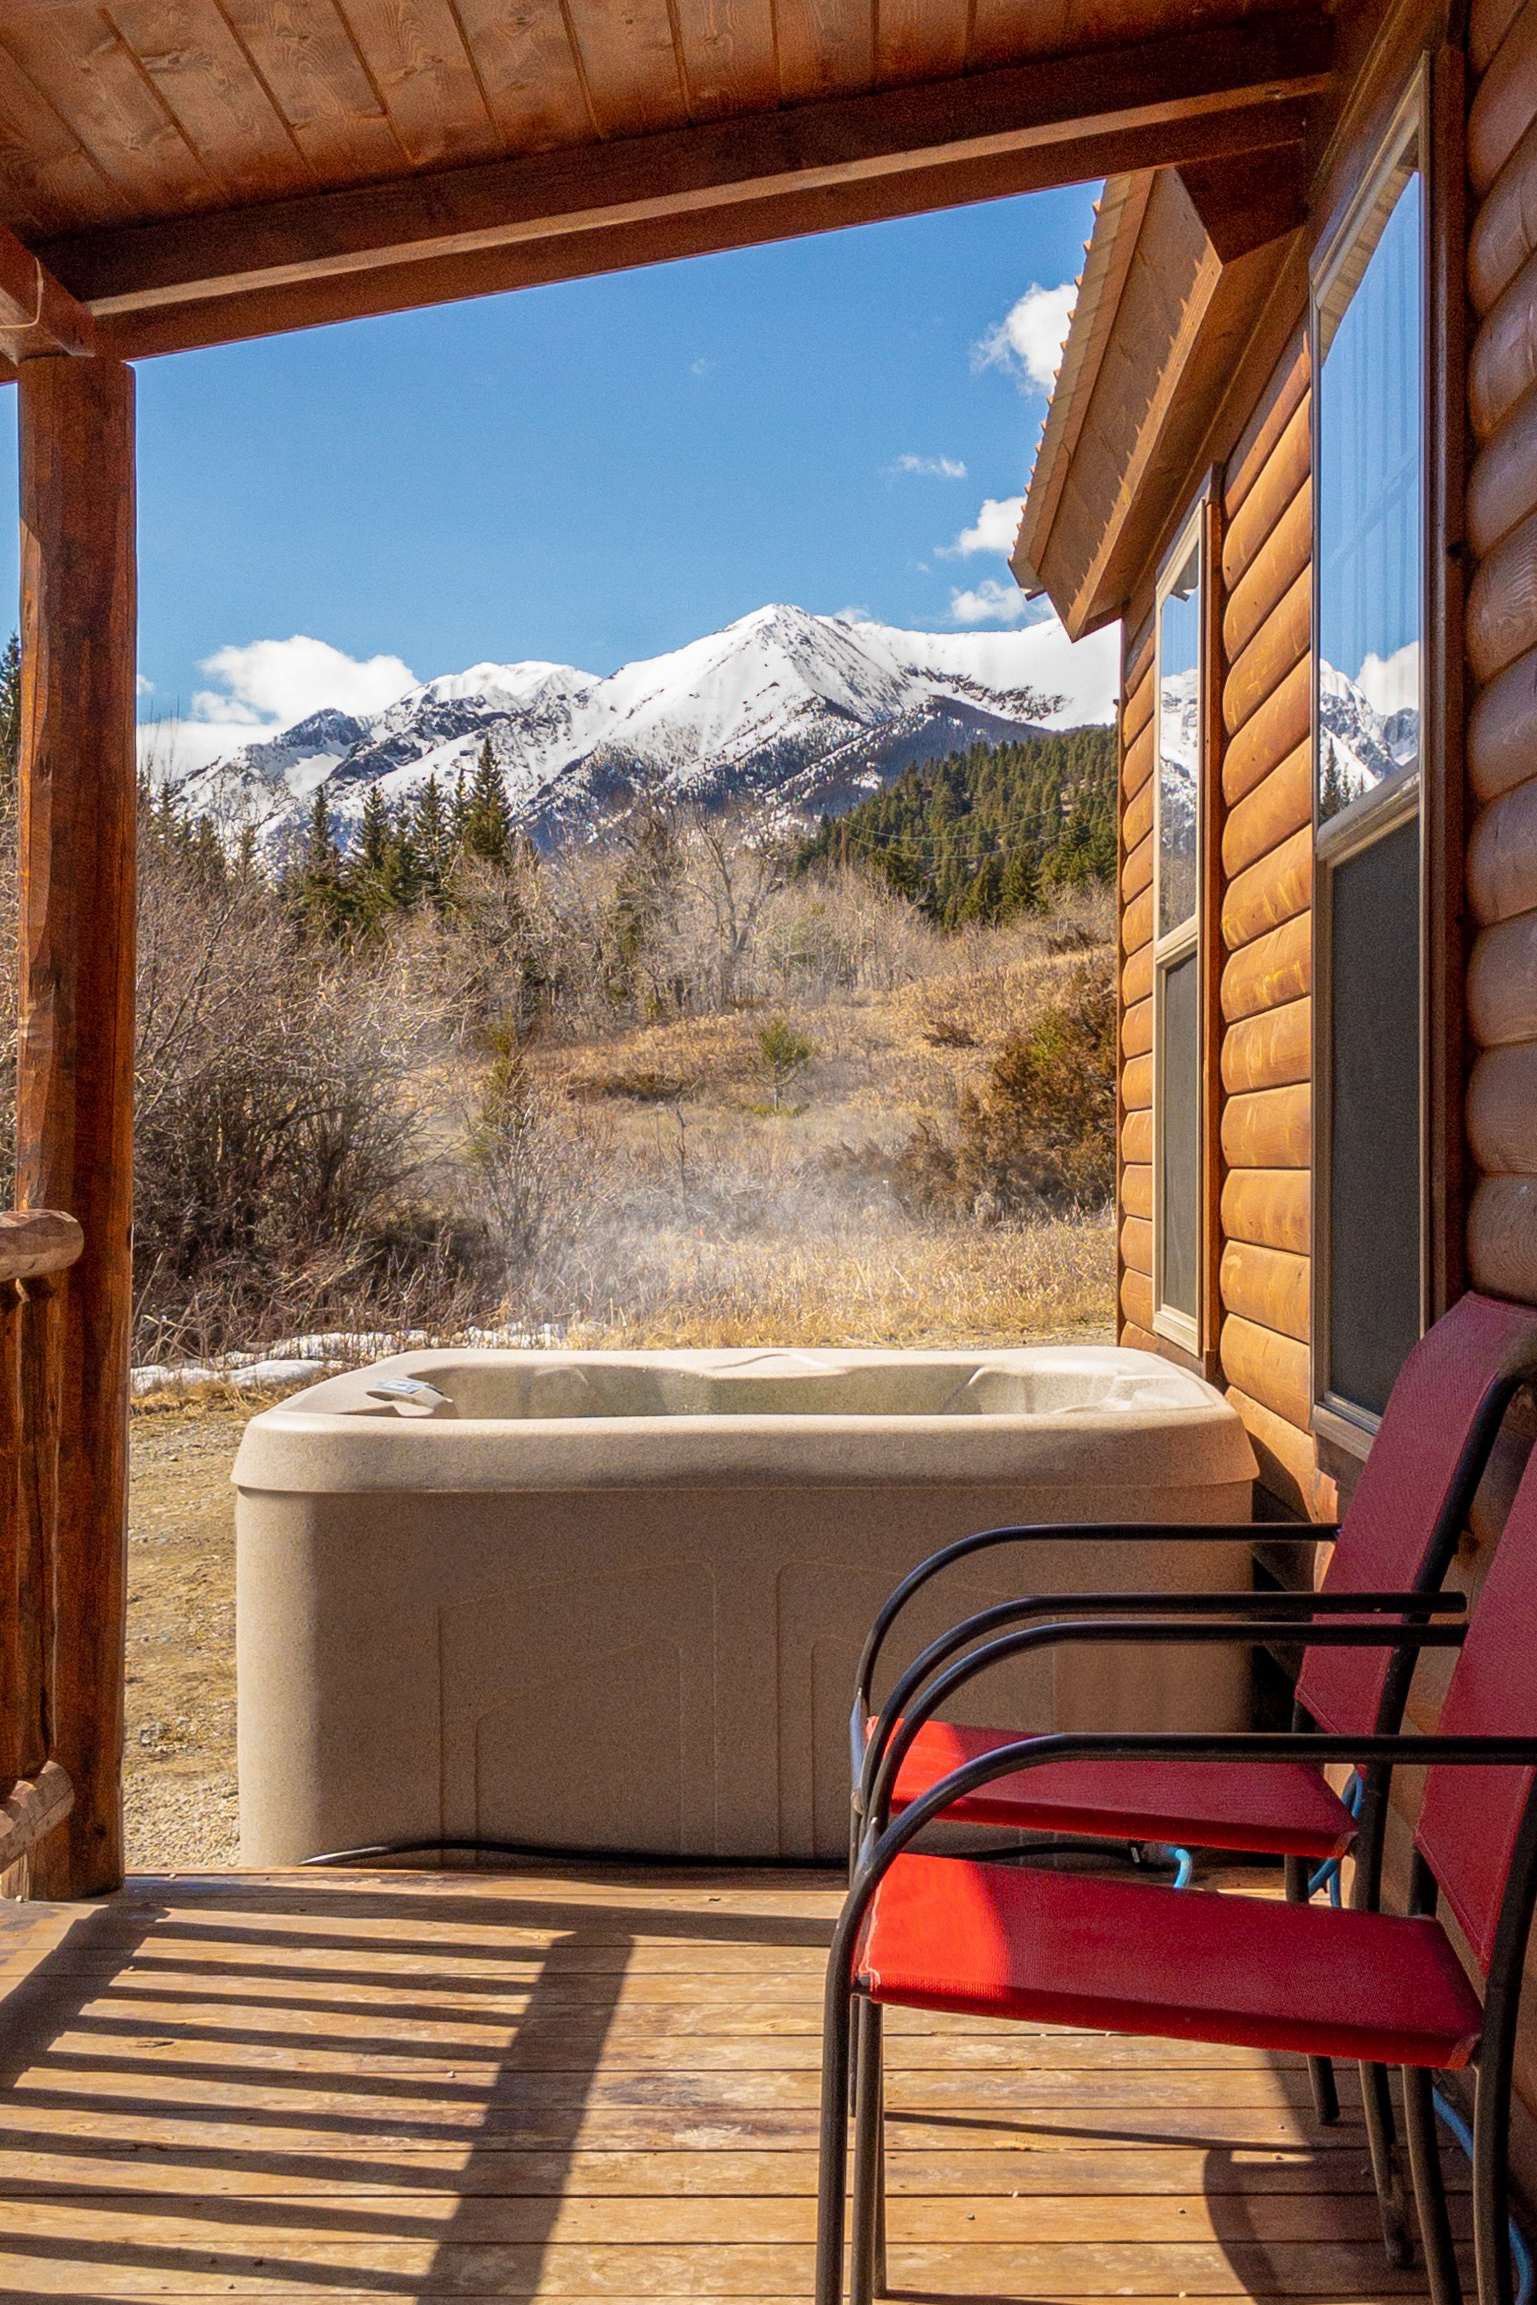 All our cabins have hot tubs